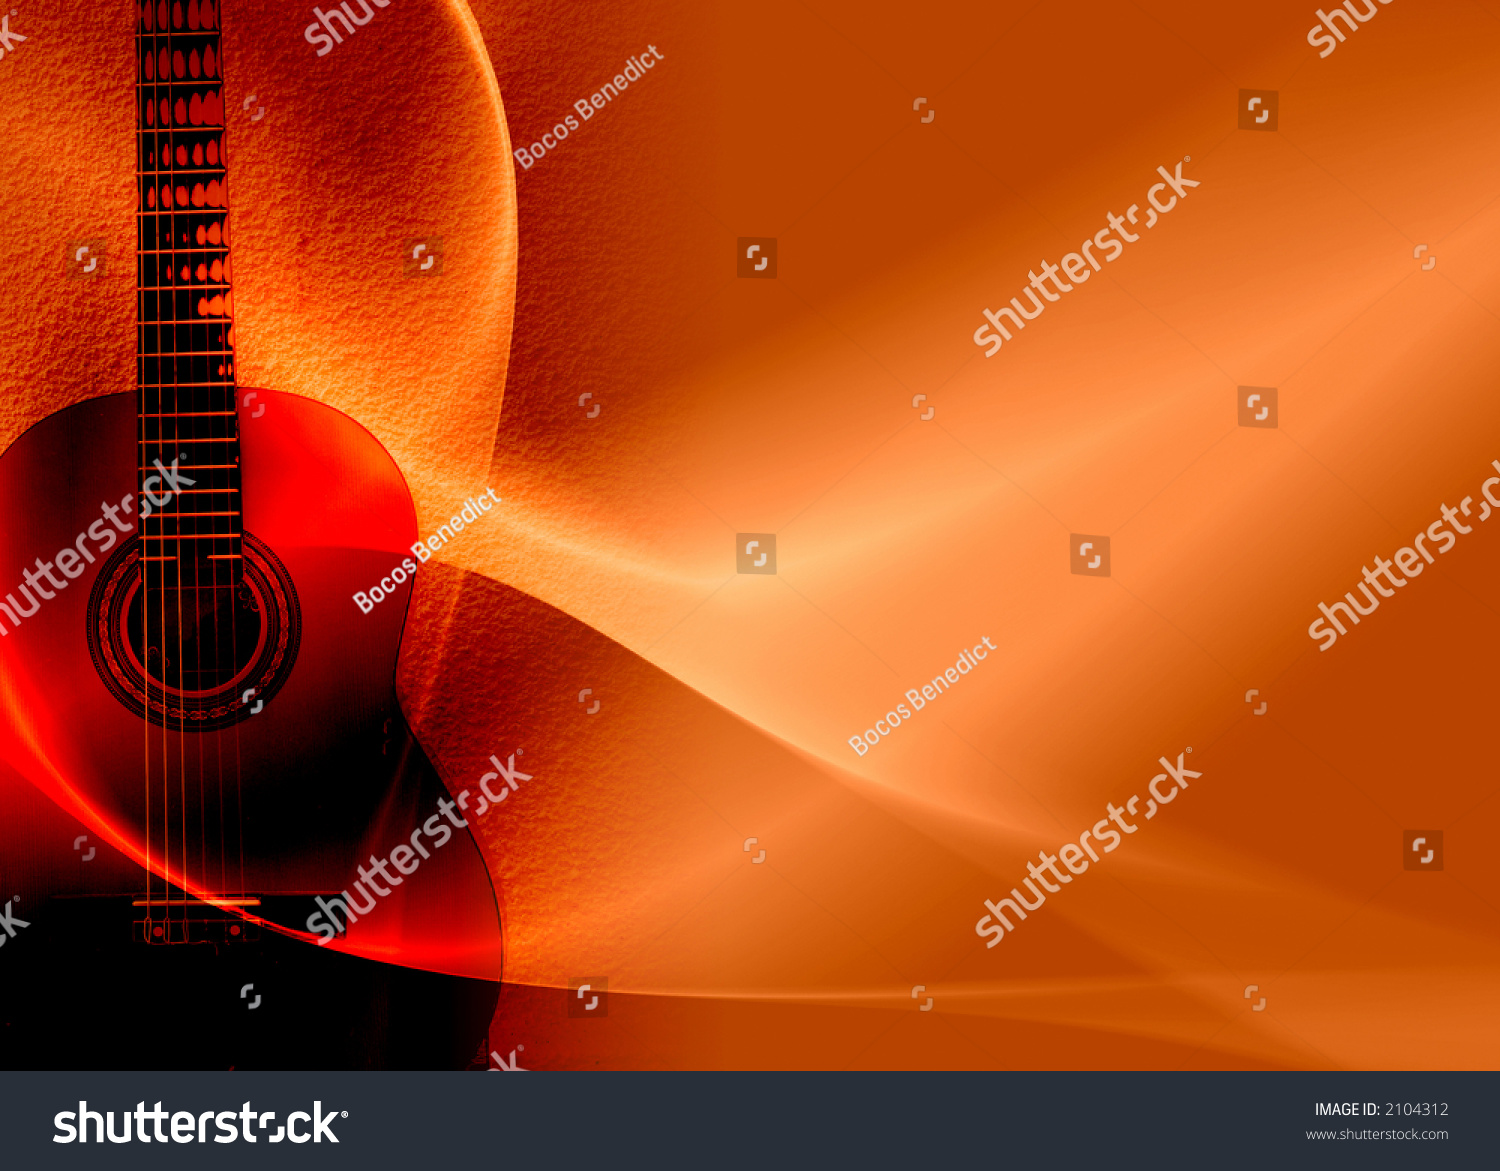 abstract guitar composition stock photo 2104312 shutterstock. Black Bedroom Furniture Sets. Home Design Ideas